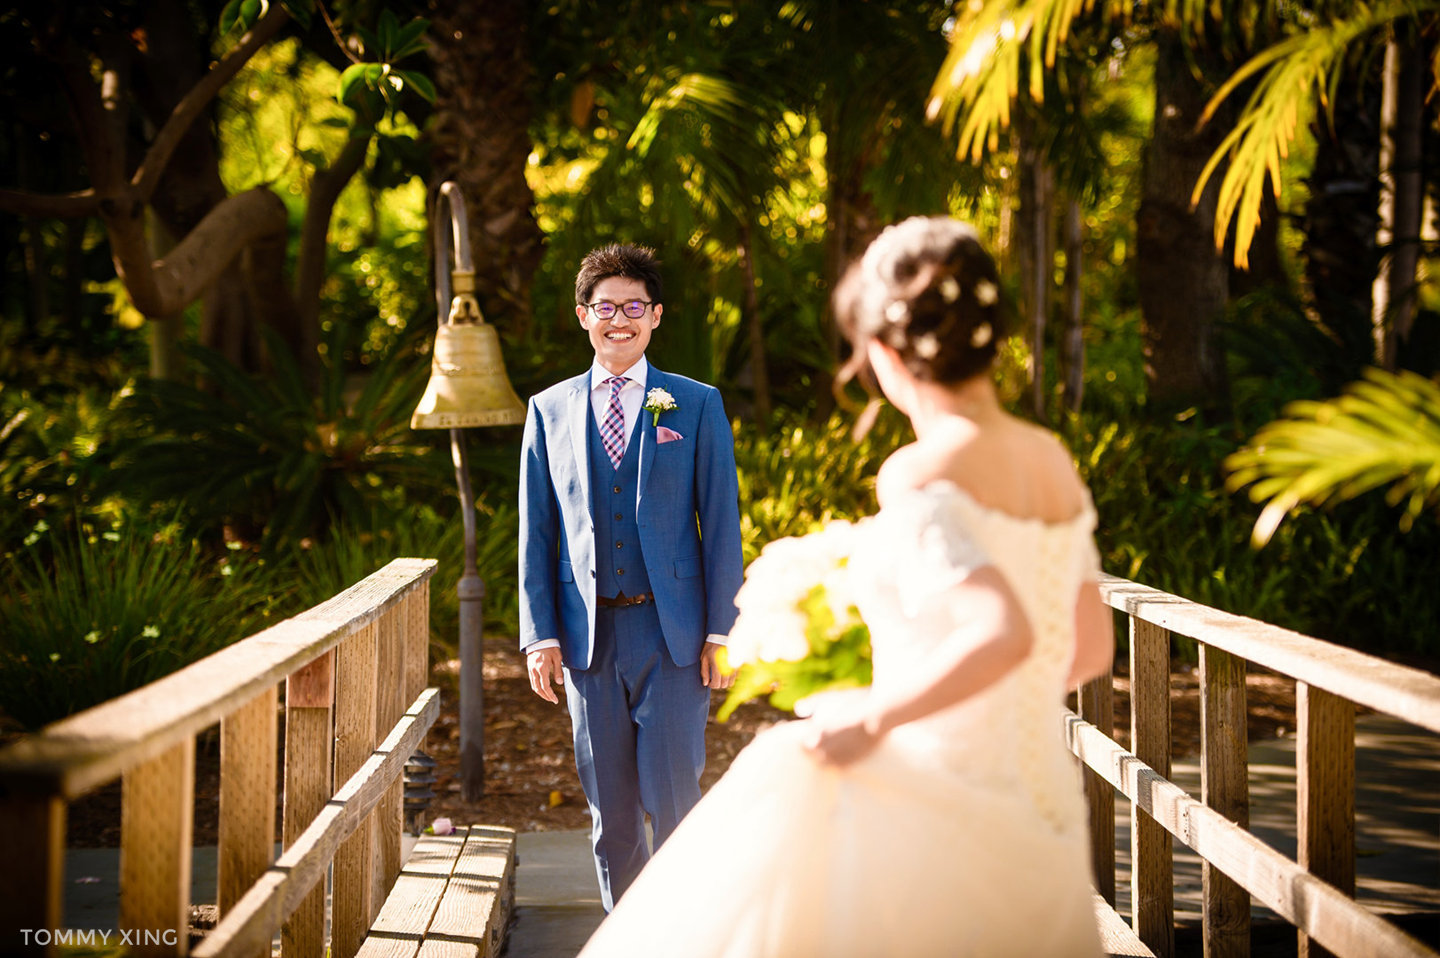 Paradise Point Resort Wedding Xiaolu & Bin San Diego 圣地亚哥婚礼摄影跟拍 Tommy Xing Photography 洛杉矶婚礼婚纱照摄影师 064.jpg